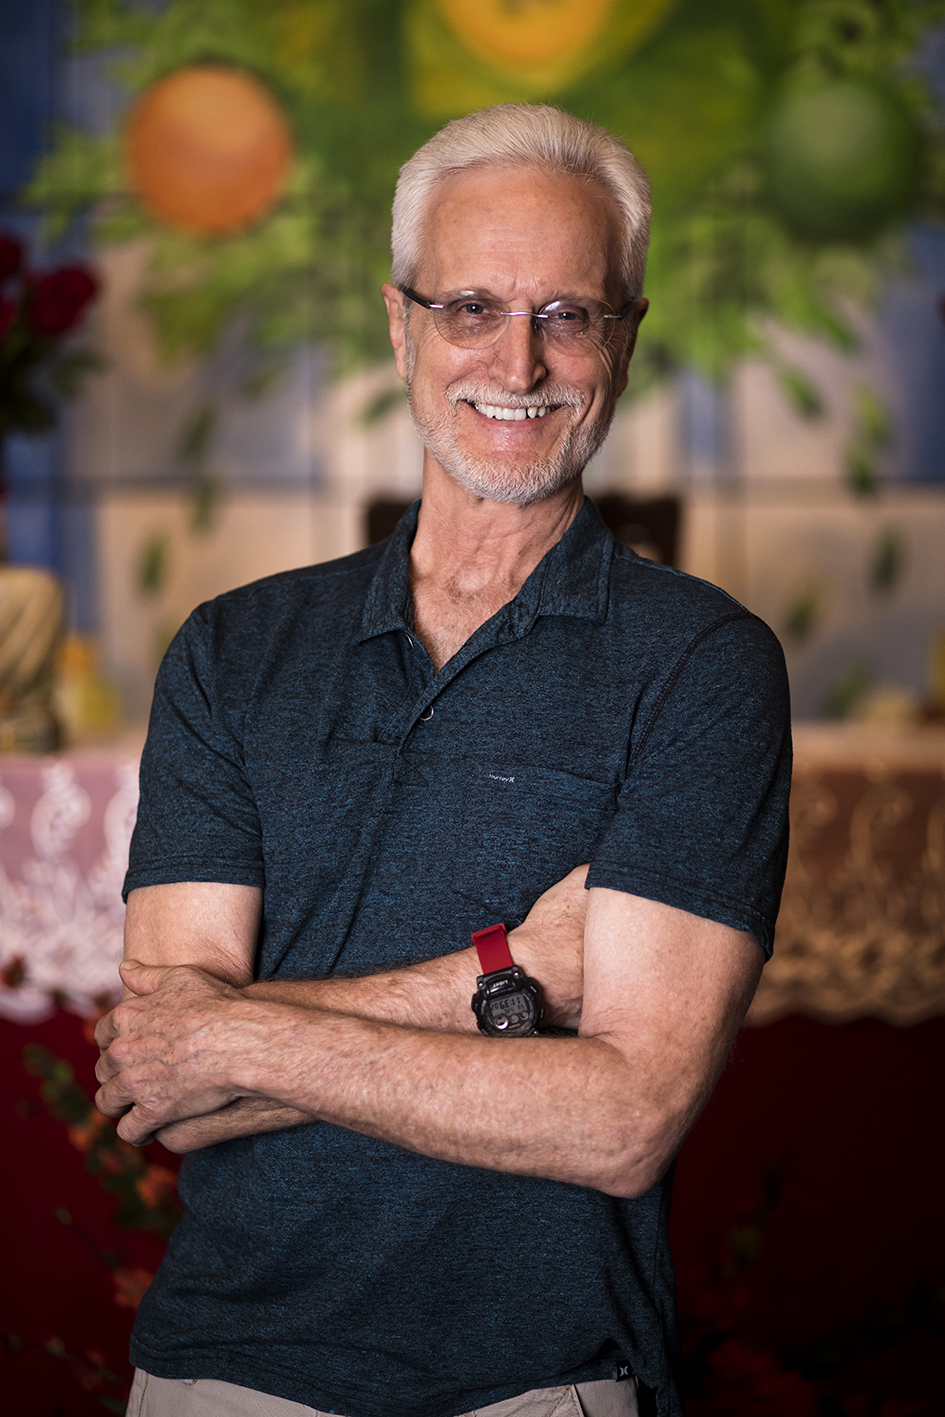 Bill Bradley    Member at Large   Bill is a licensed clinical social worker and marriage & family therapist with a private practice in Tempe, Arizona since 1980.